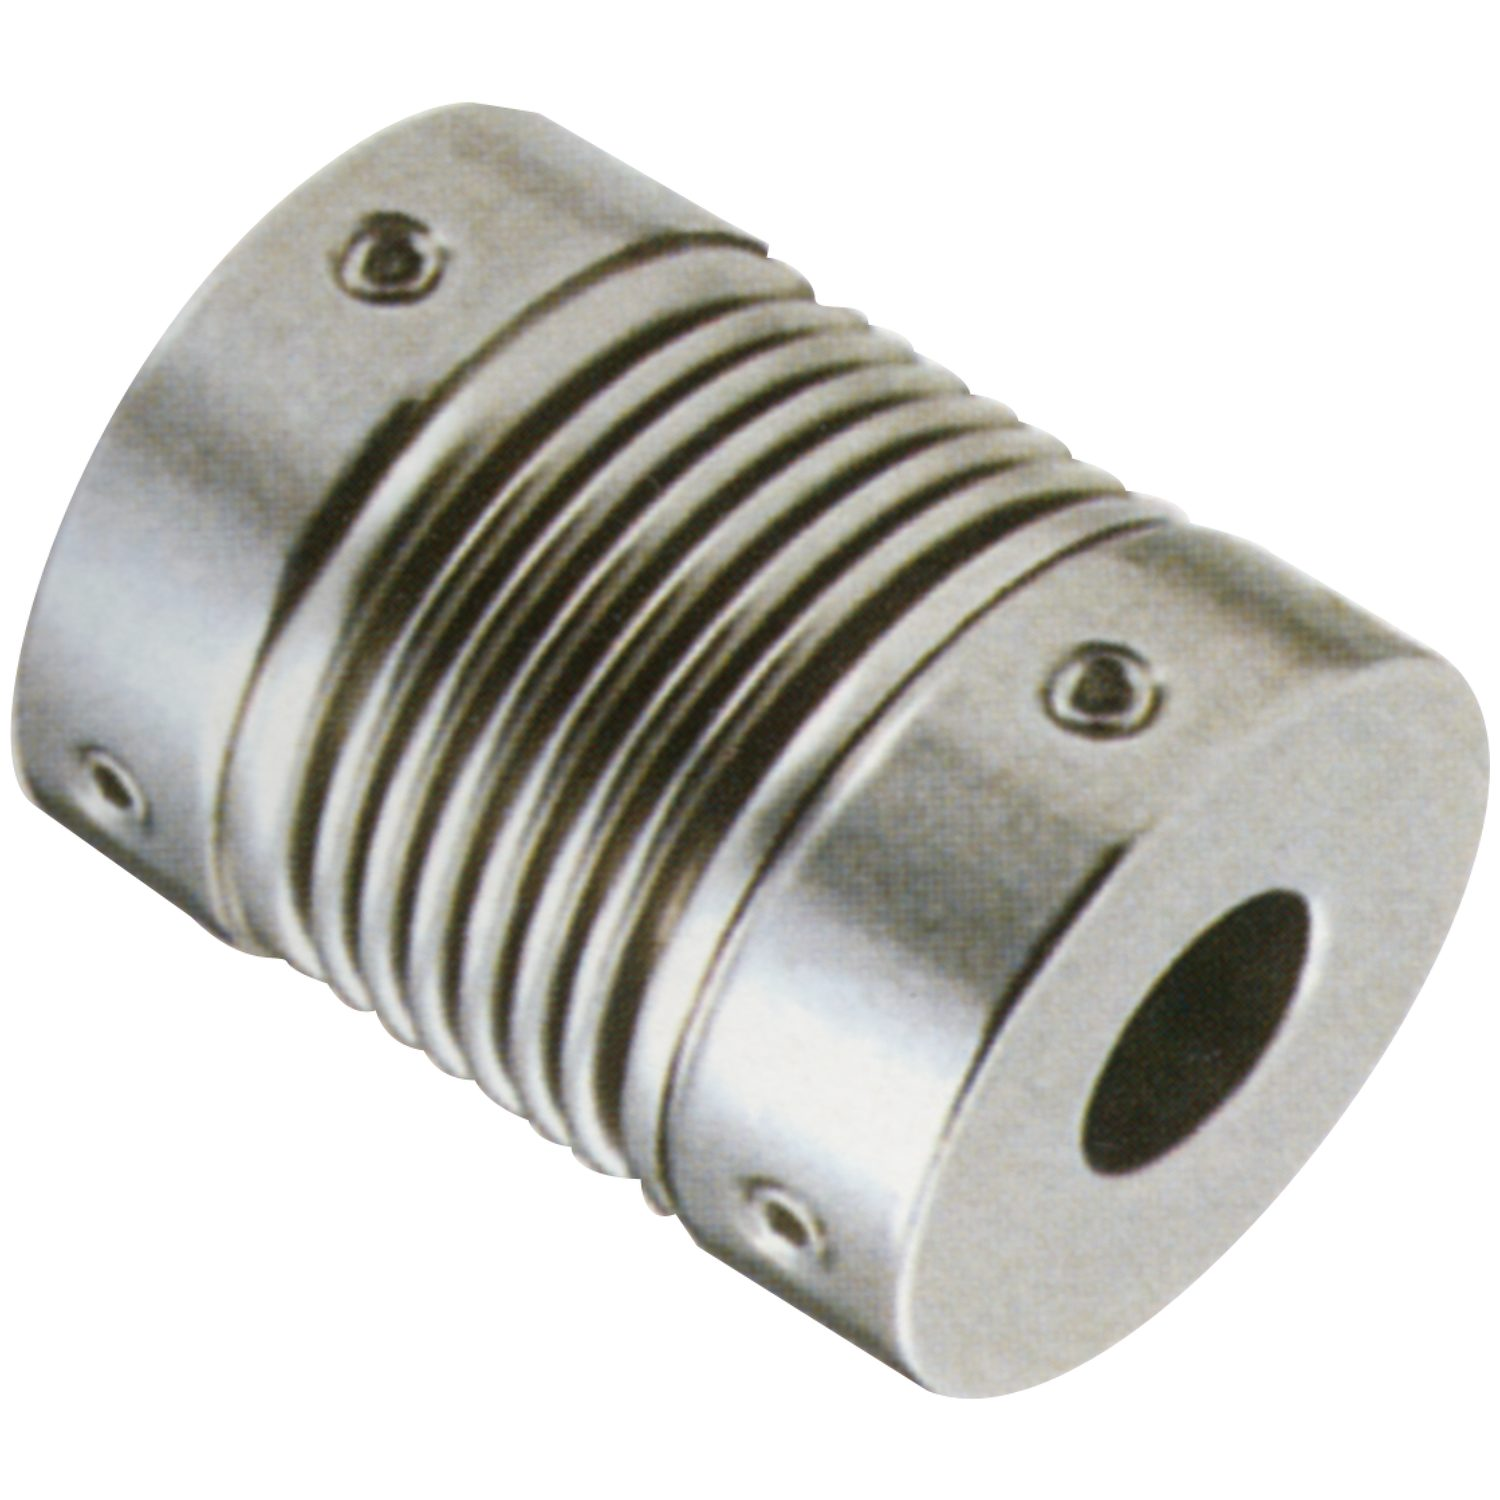 R3011 - Full Bellows Coupling - Stainless Steel